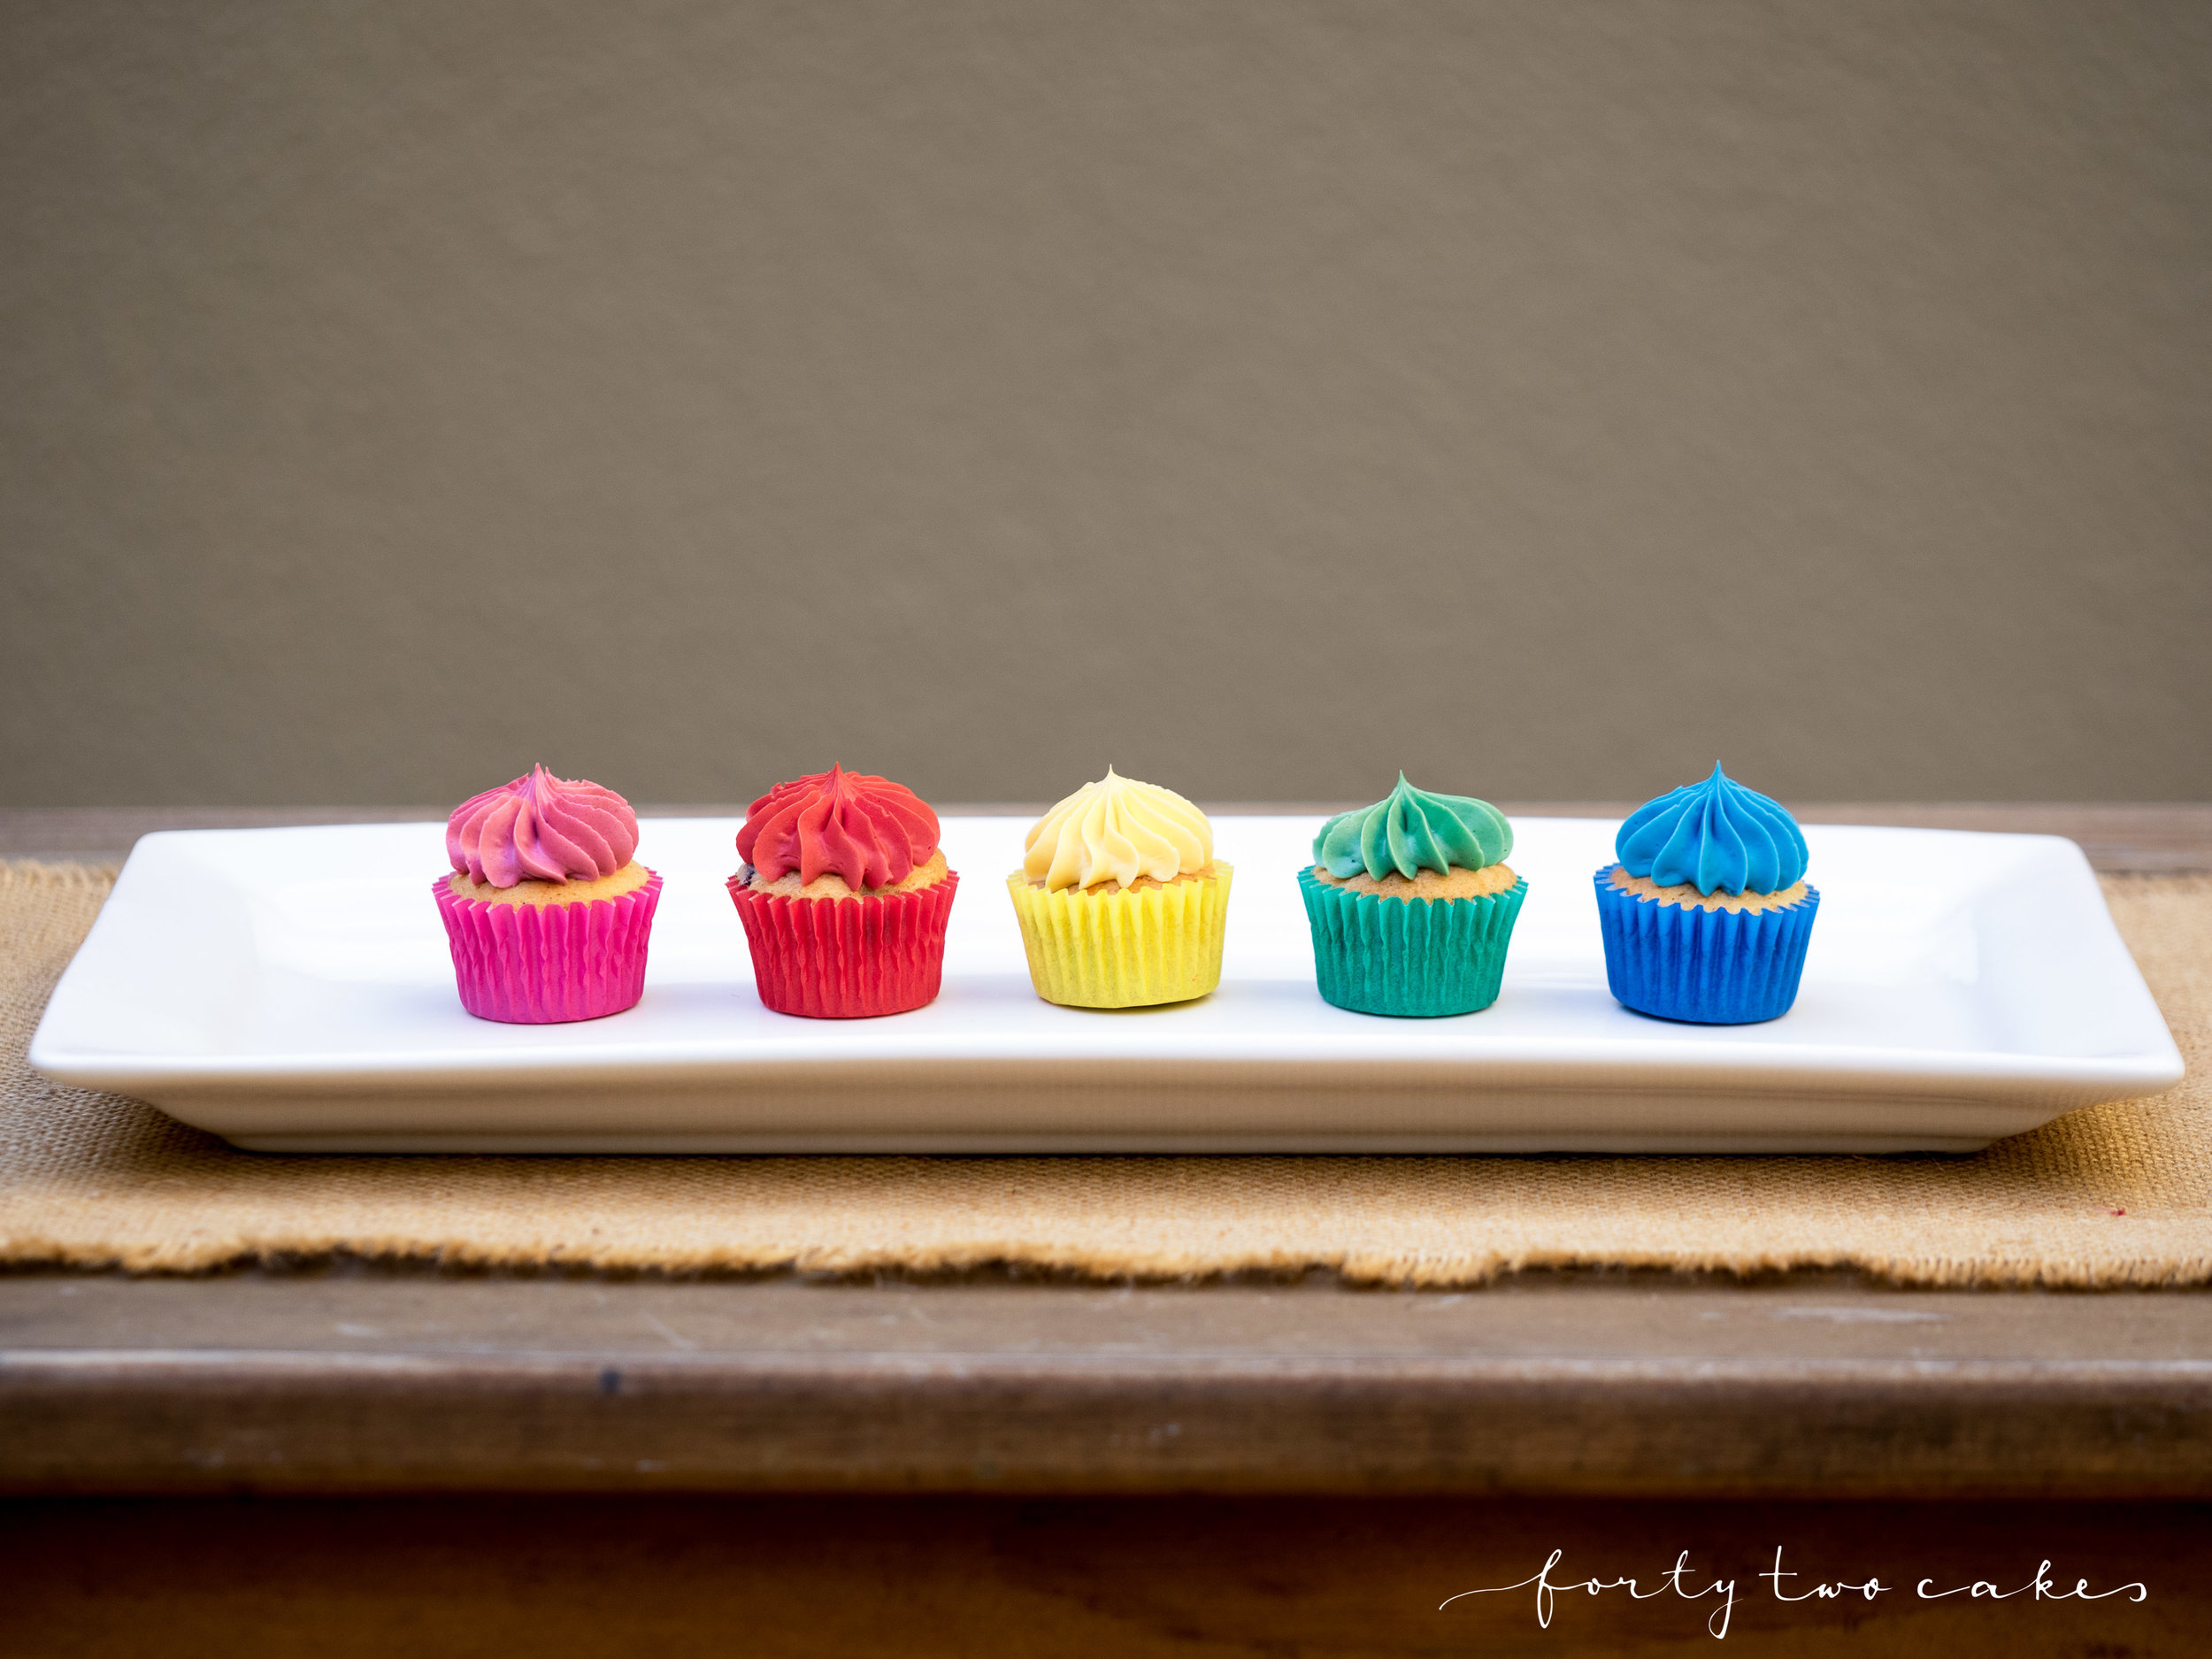 Forty-Two Cakes - Small Things-21.jpg